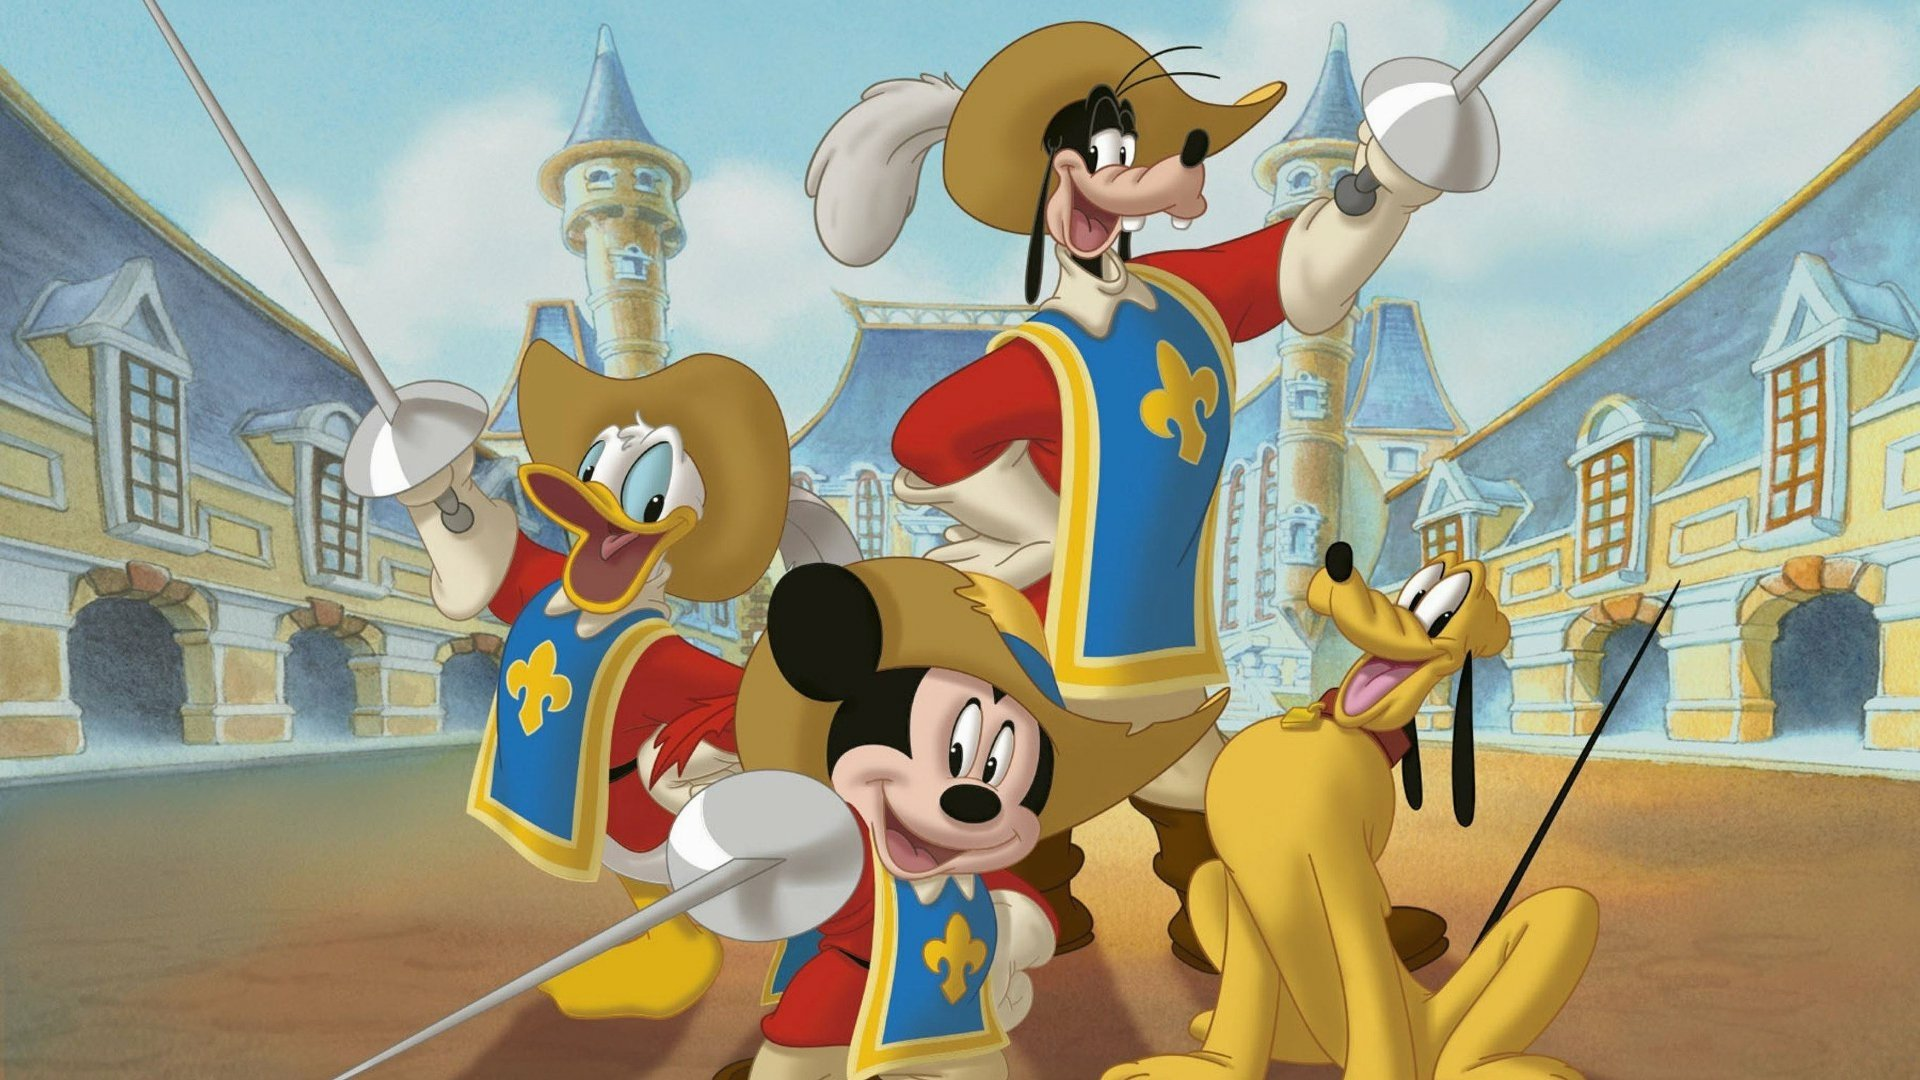 3 Mickey Donald Goofy The Three Musketeers Hd Wallpapers Background Images Wallpaper Abyss